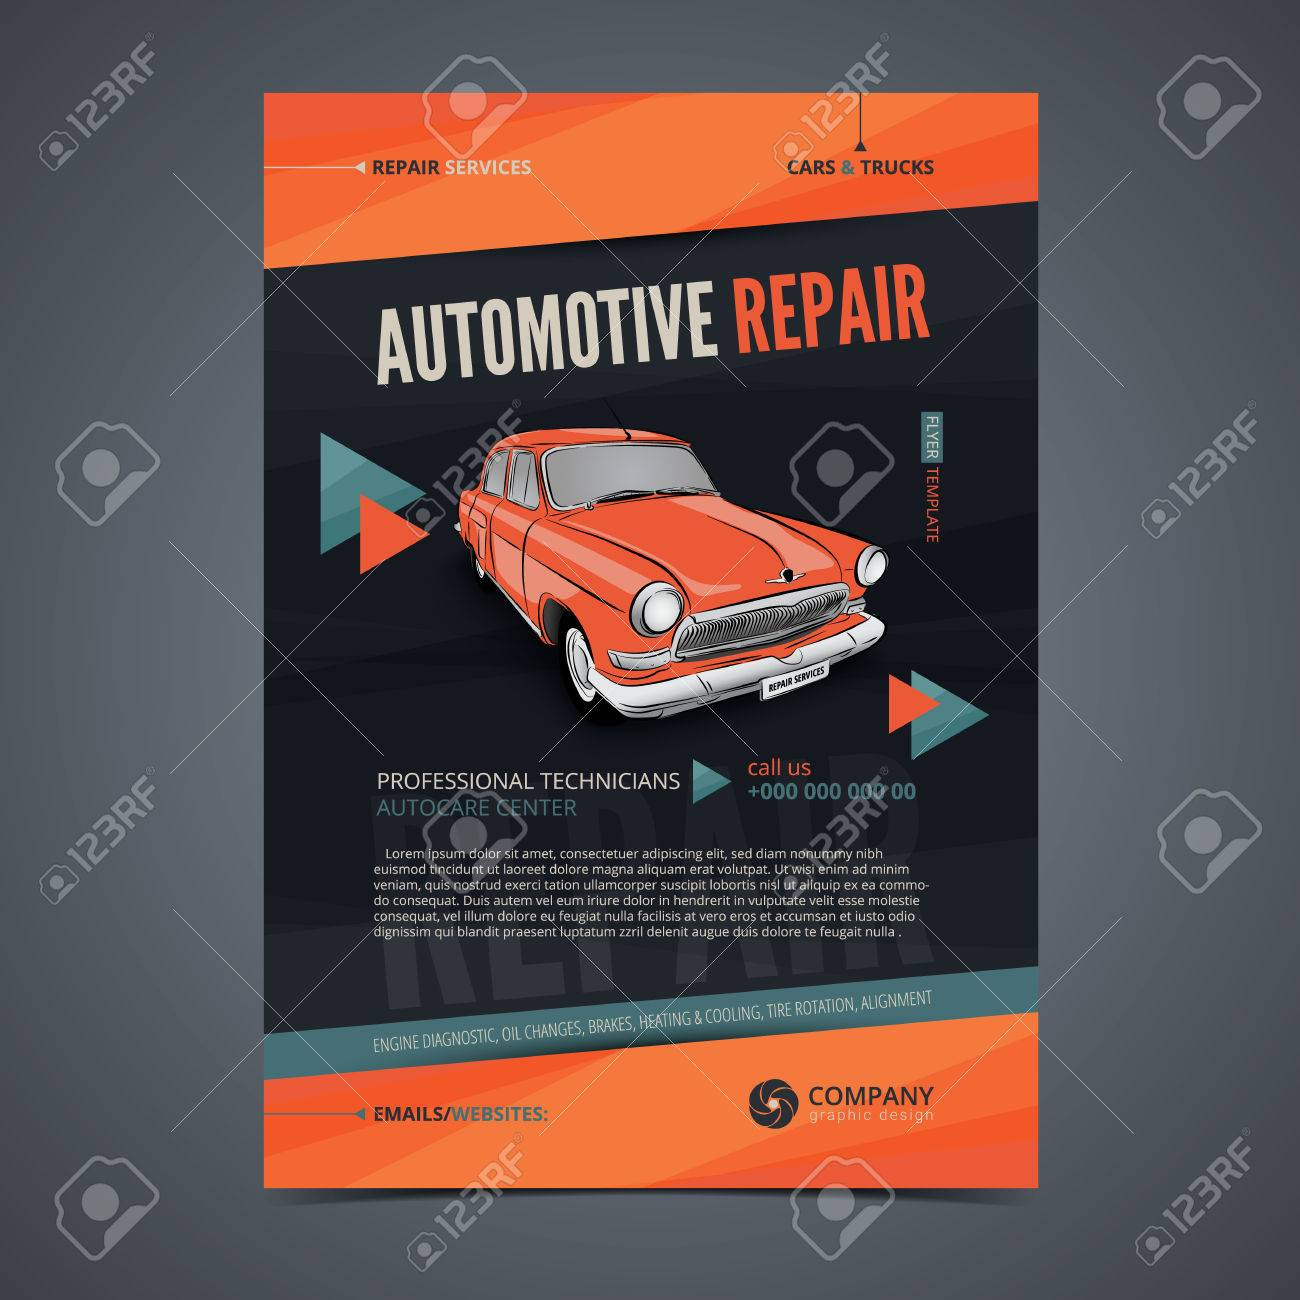 Auto Repair Services Layout Templates, Automobile Magazine Cover ...